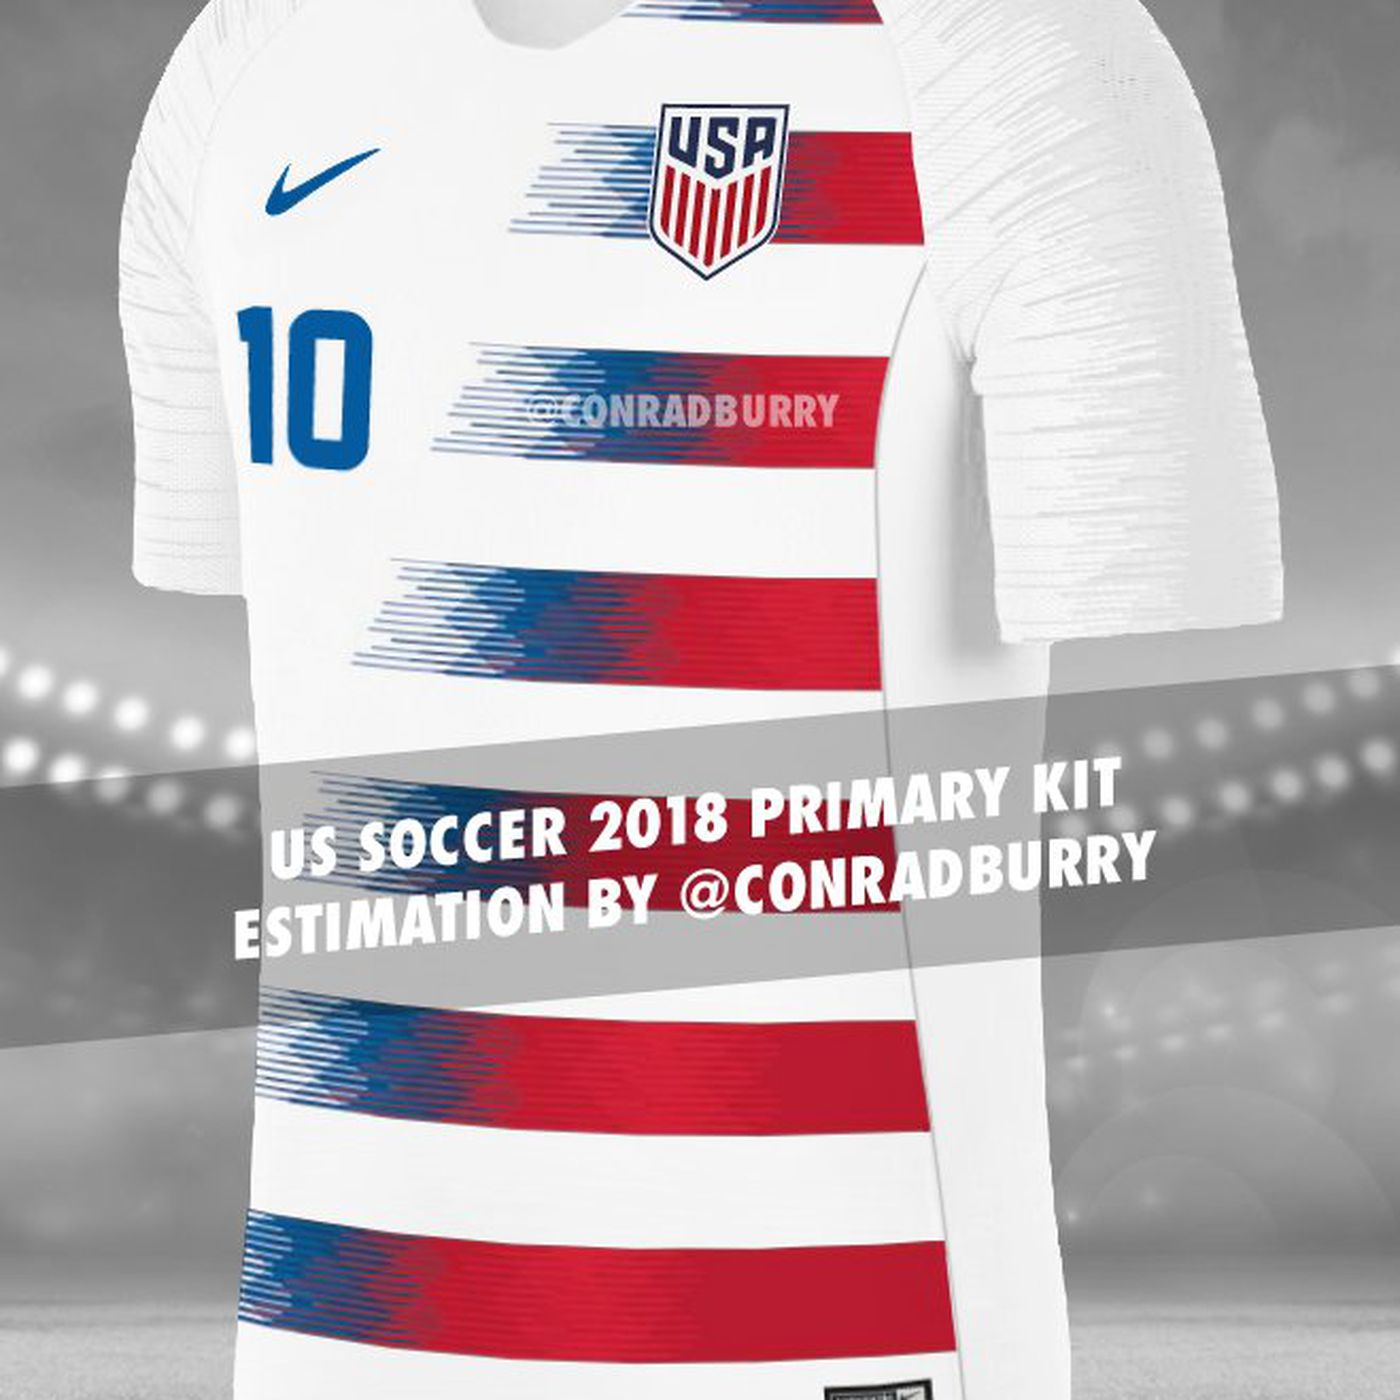 huge selection of 1bc24 68ce7 2018 USA jerseys leaked - Stars and Stripes FC